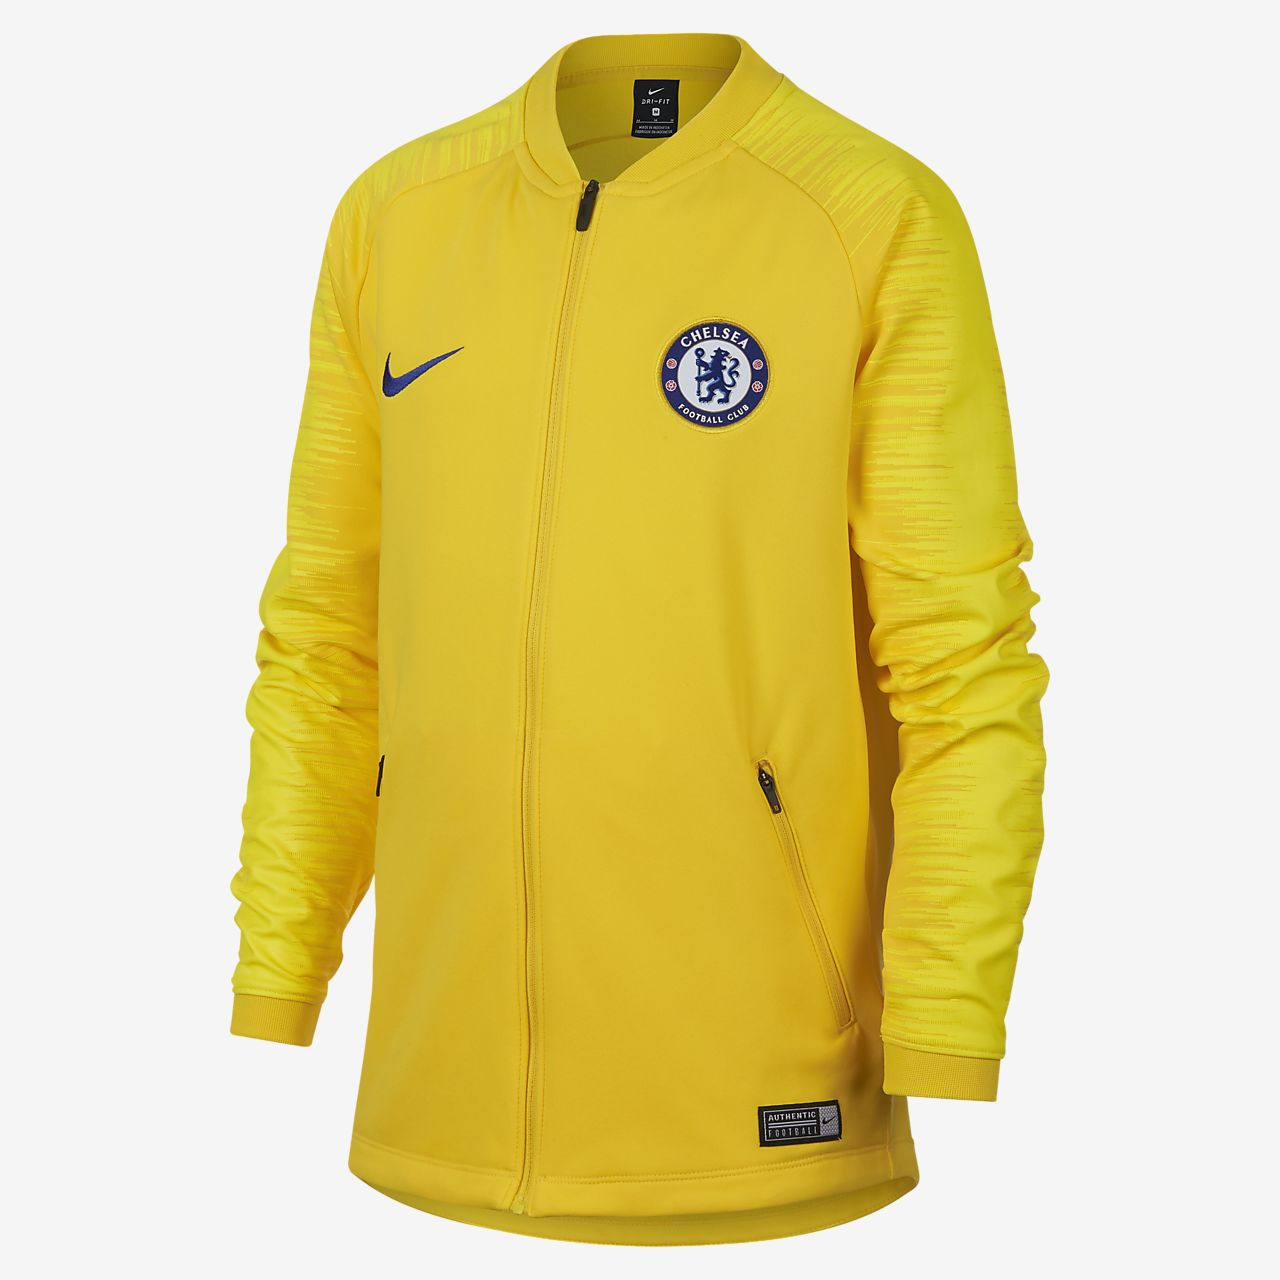 30c775667 Chelsea FC Anthem Older Kids' Football Jacket. Nike.com GB